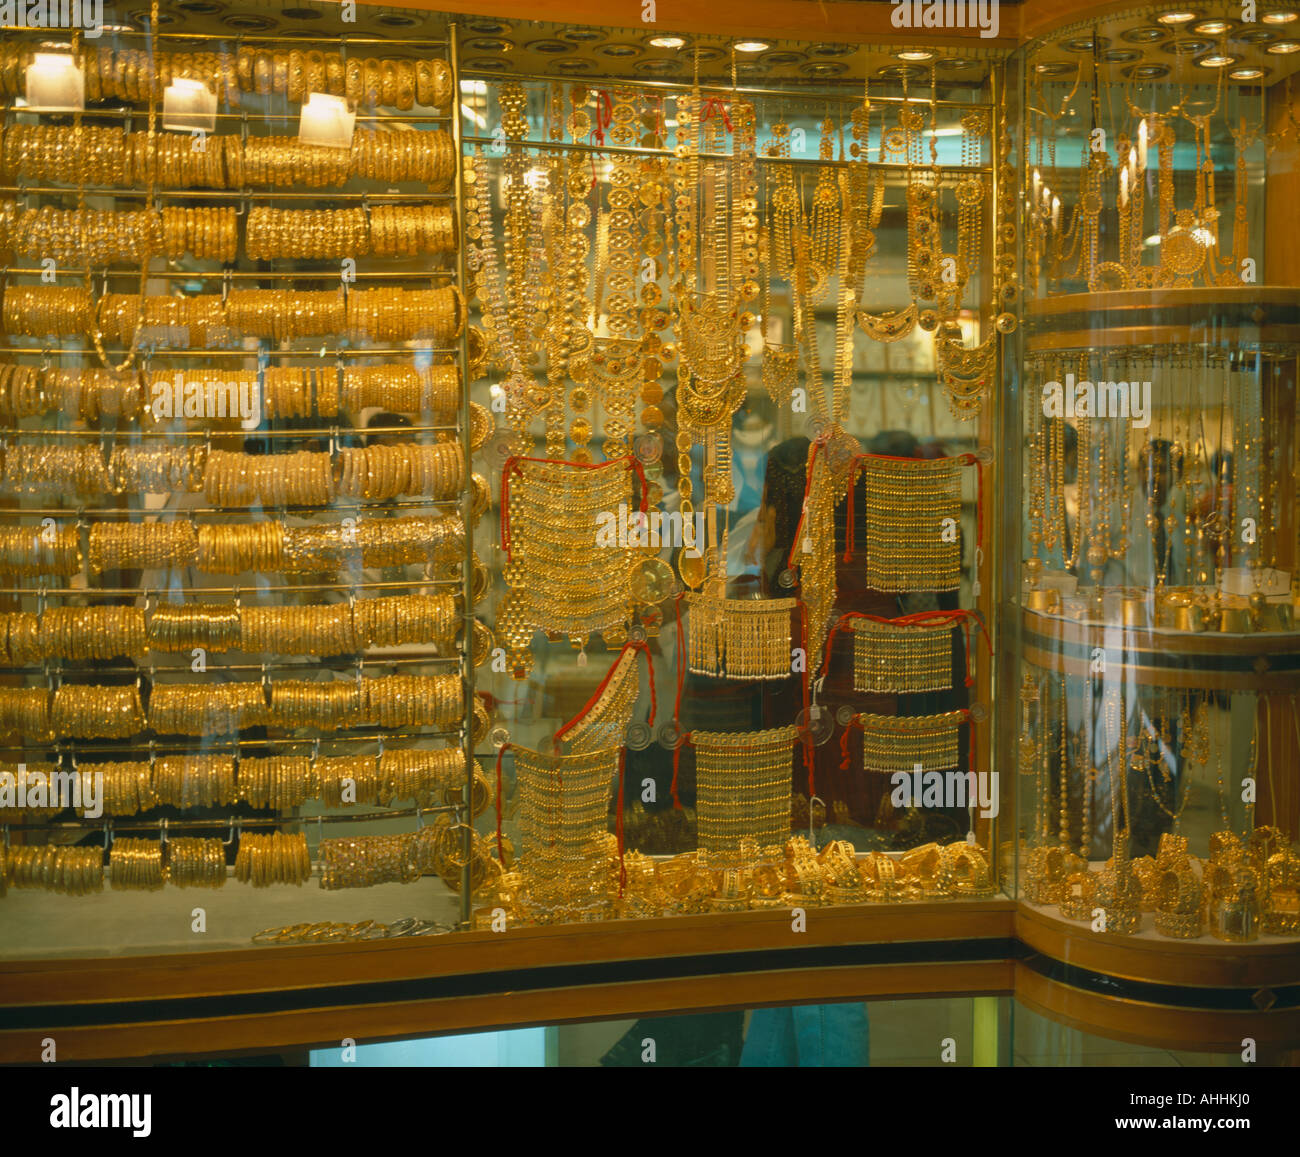 UAE Dubai Middle East Gulf State Yellow Gold jewelry displayed in